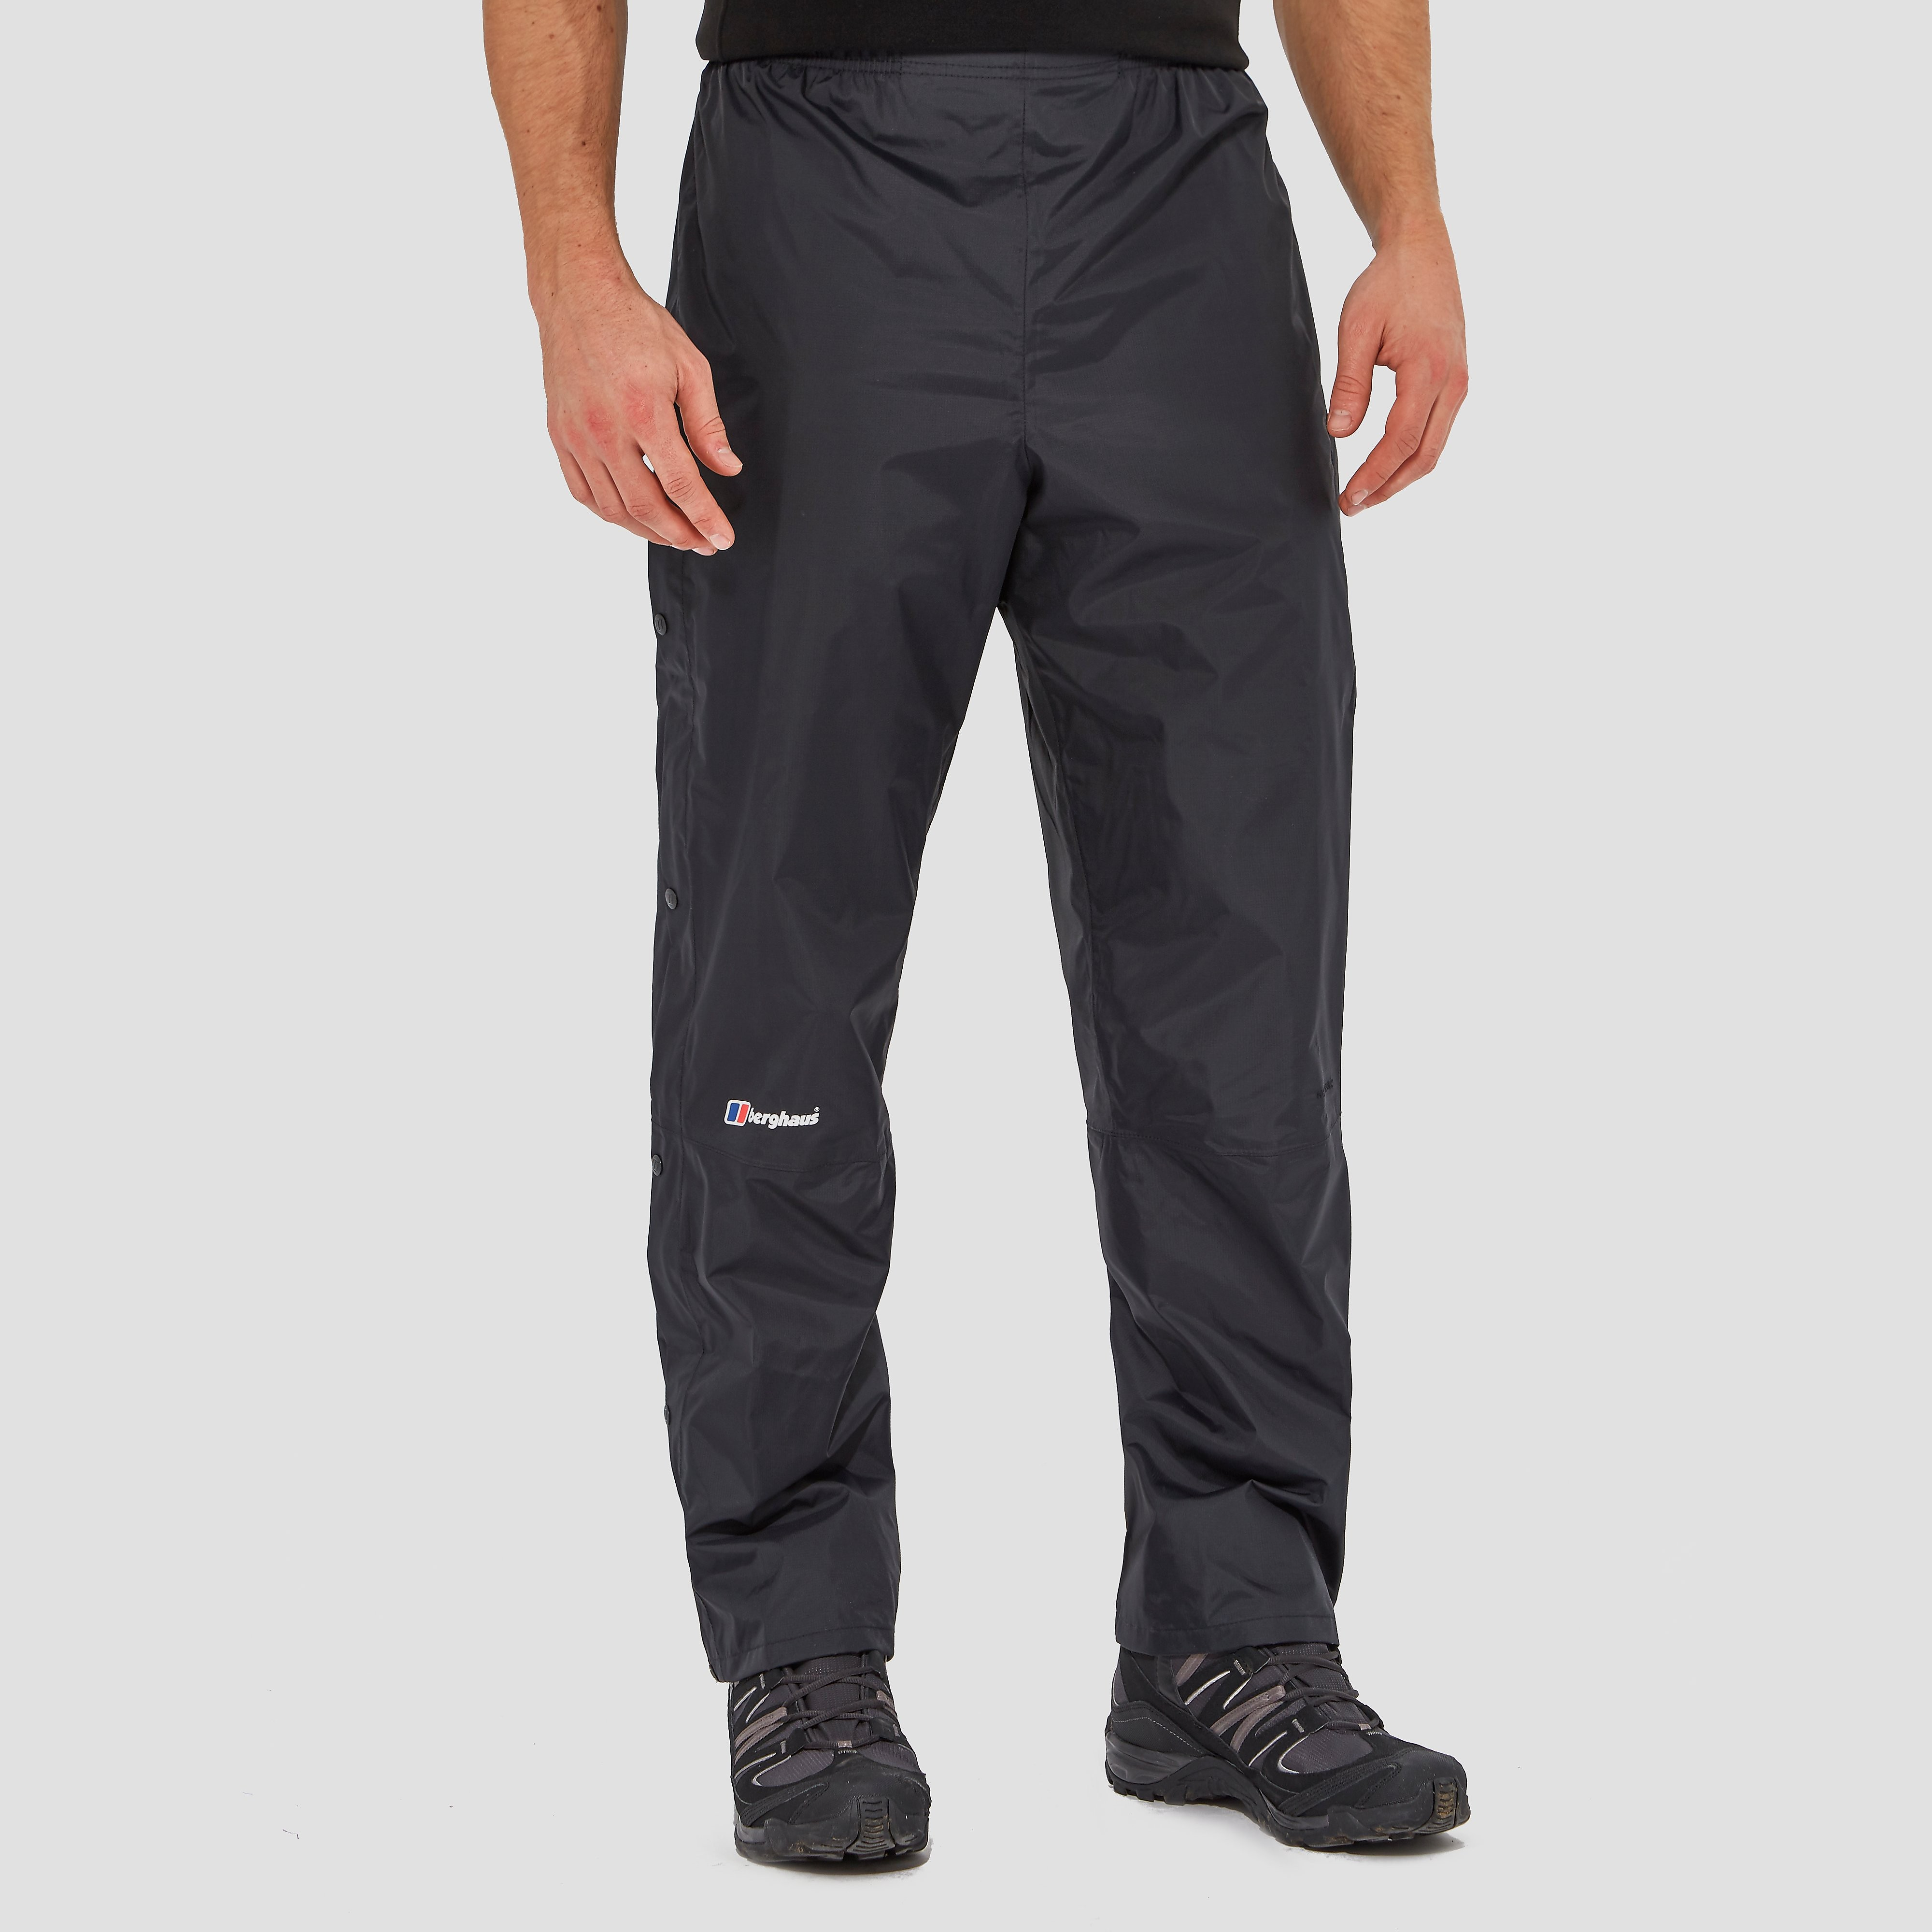 Berghaus Deluge Waterproof Men's Pants